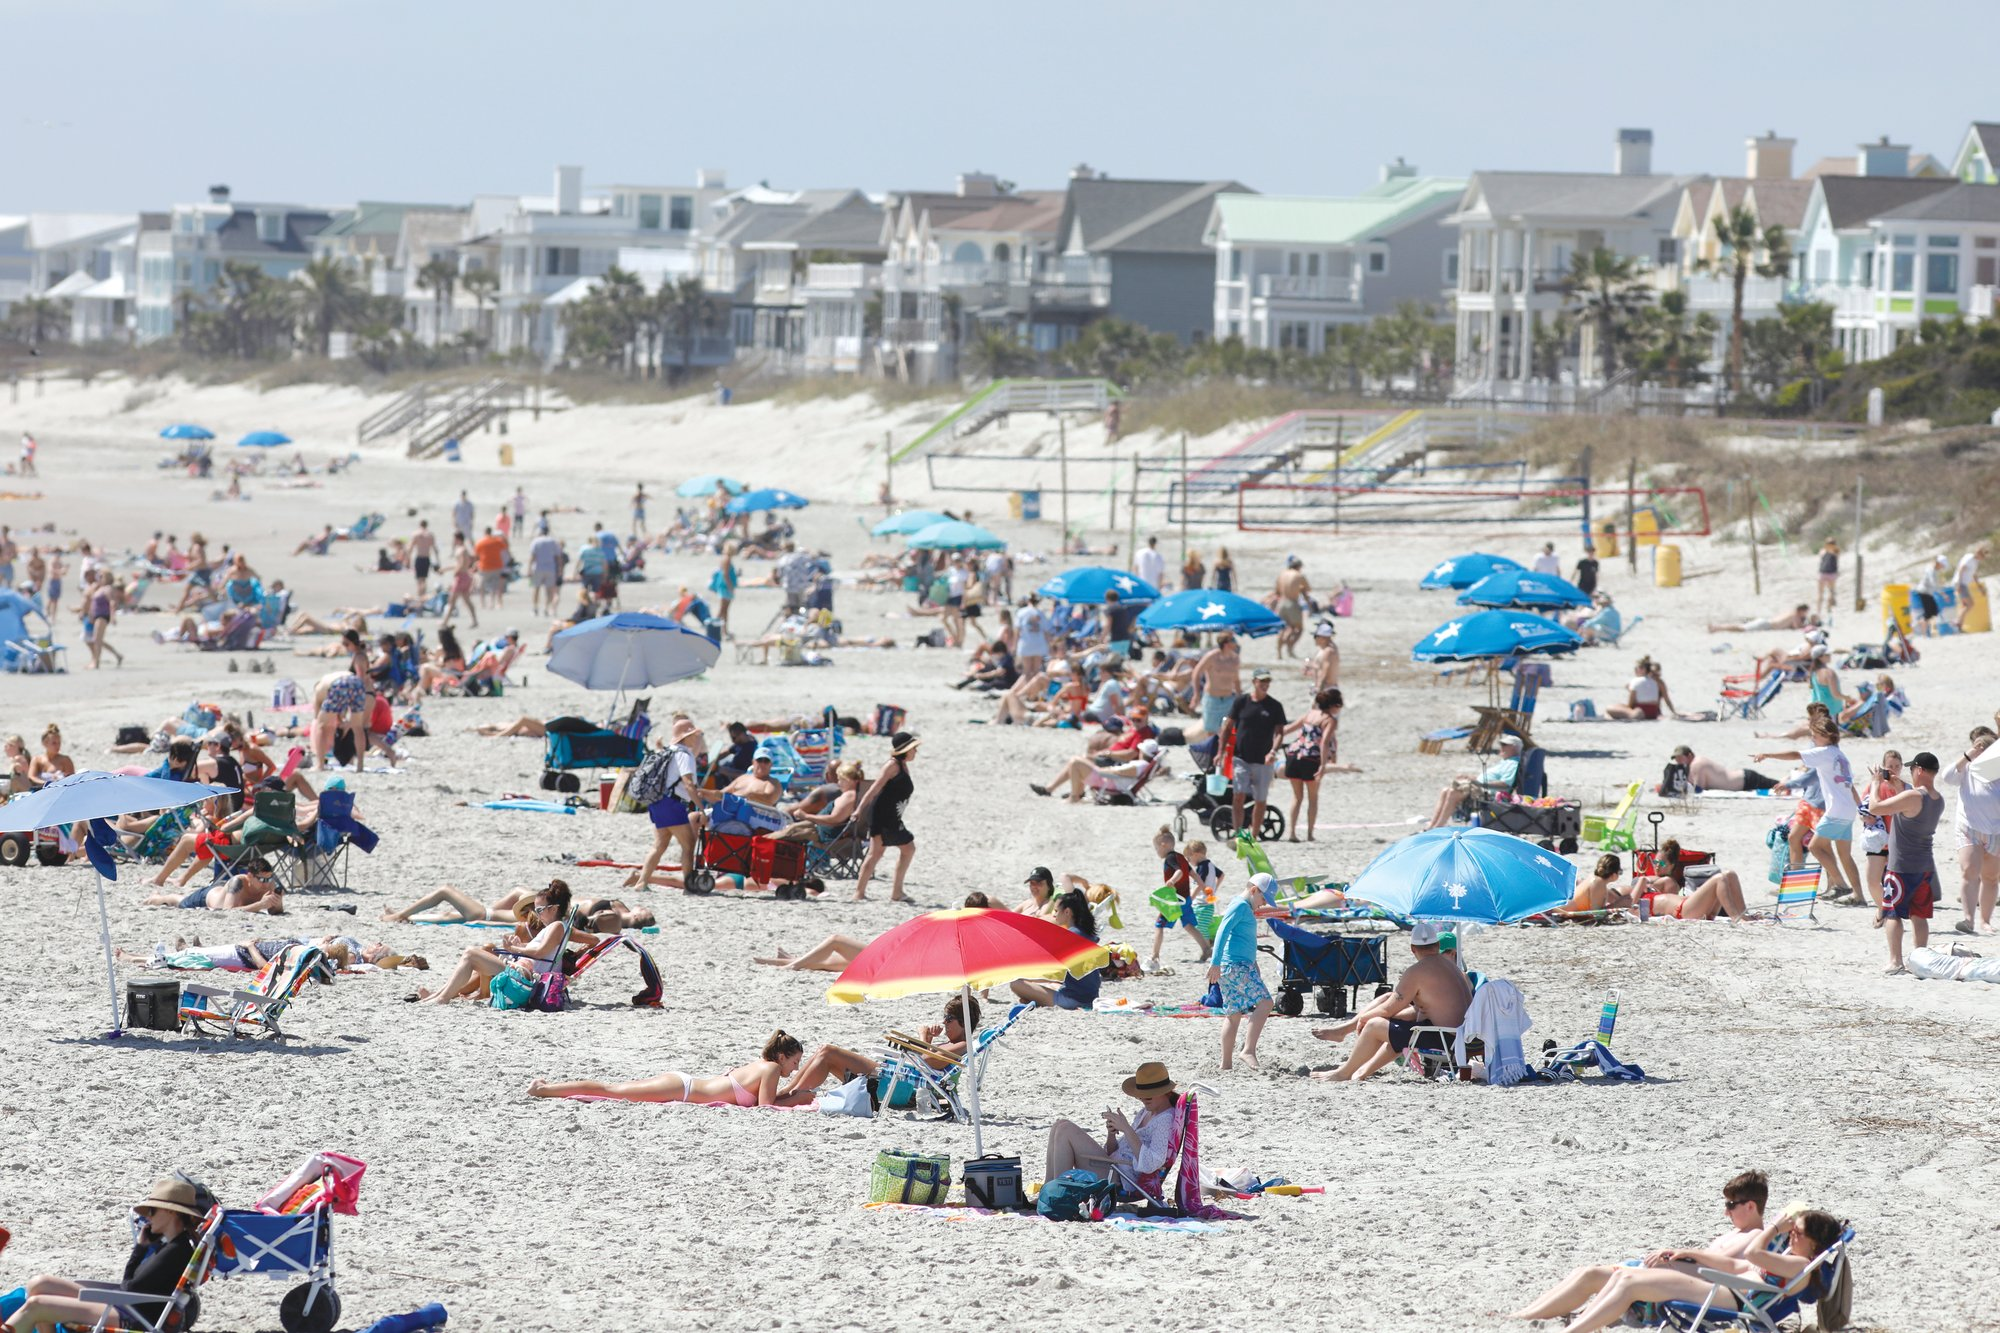 Despite warnings from government officials to take caution and self distance because of coronavirus, beachgoers enjoy the Isle of Palms beach Friday in Isle of Palms. City authorities are restricting access to the popular beach from 7 a.m. to 7 p.m. daily to help stop the spread of the coronavirus.